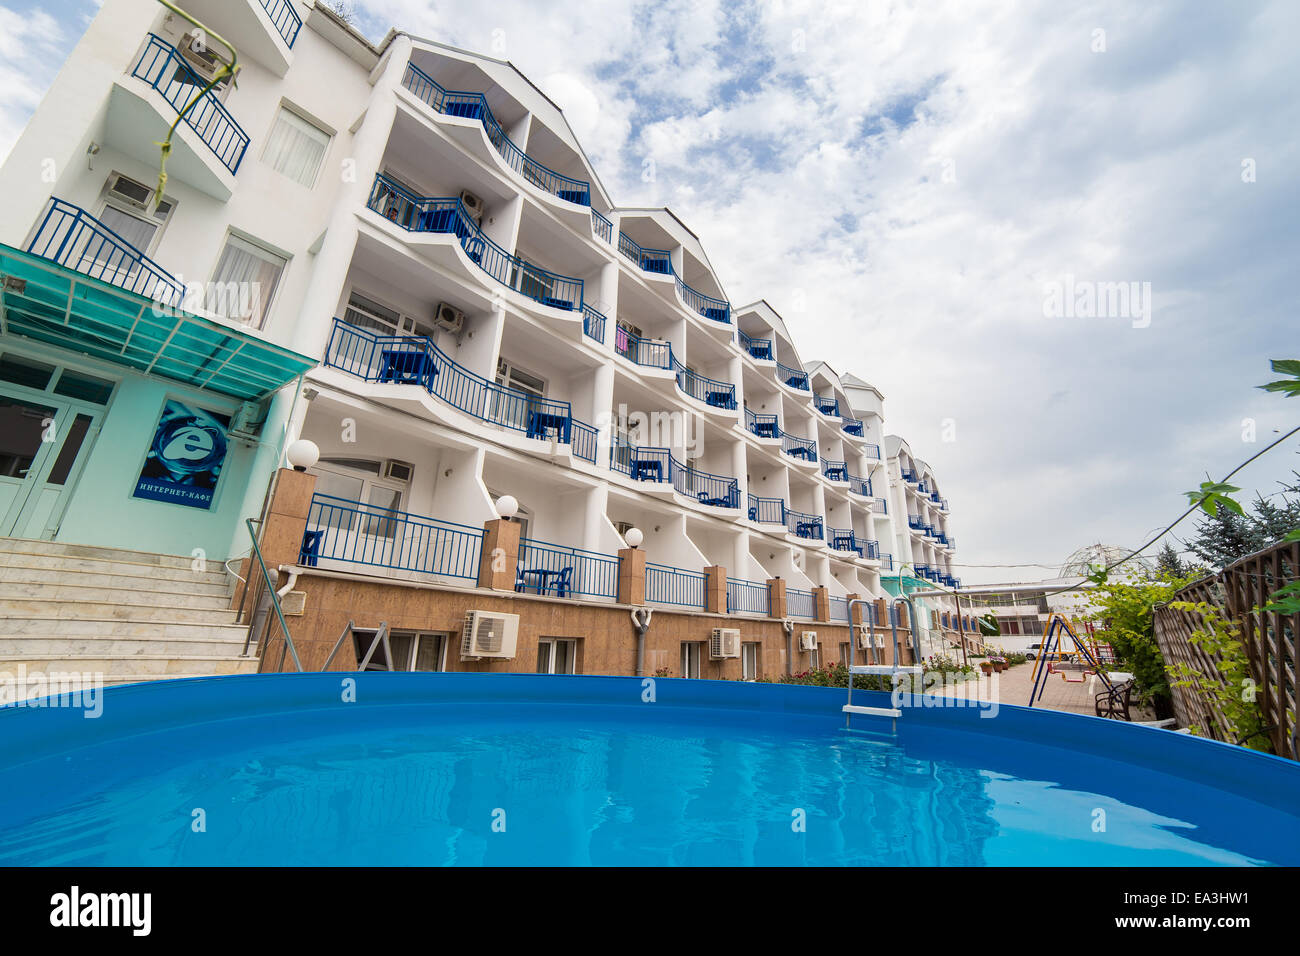 Anapa hotels: photos and reviews of tourists. Anapa hotels are all inclusive. Hotel rating Anapa 24